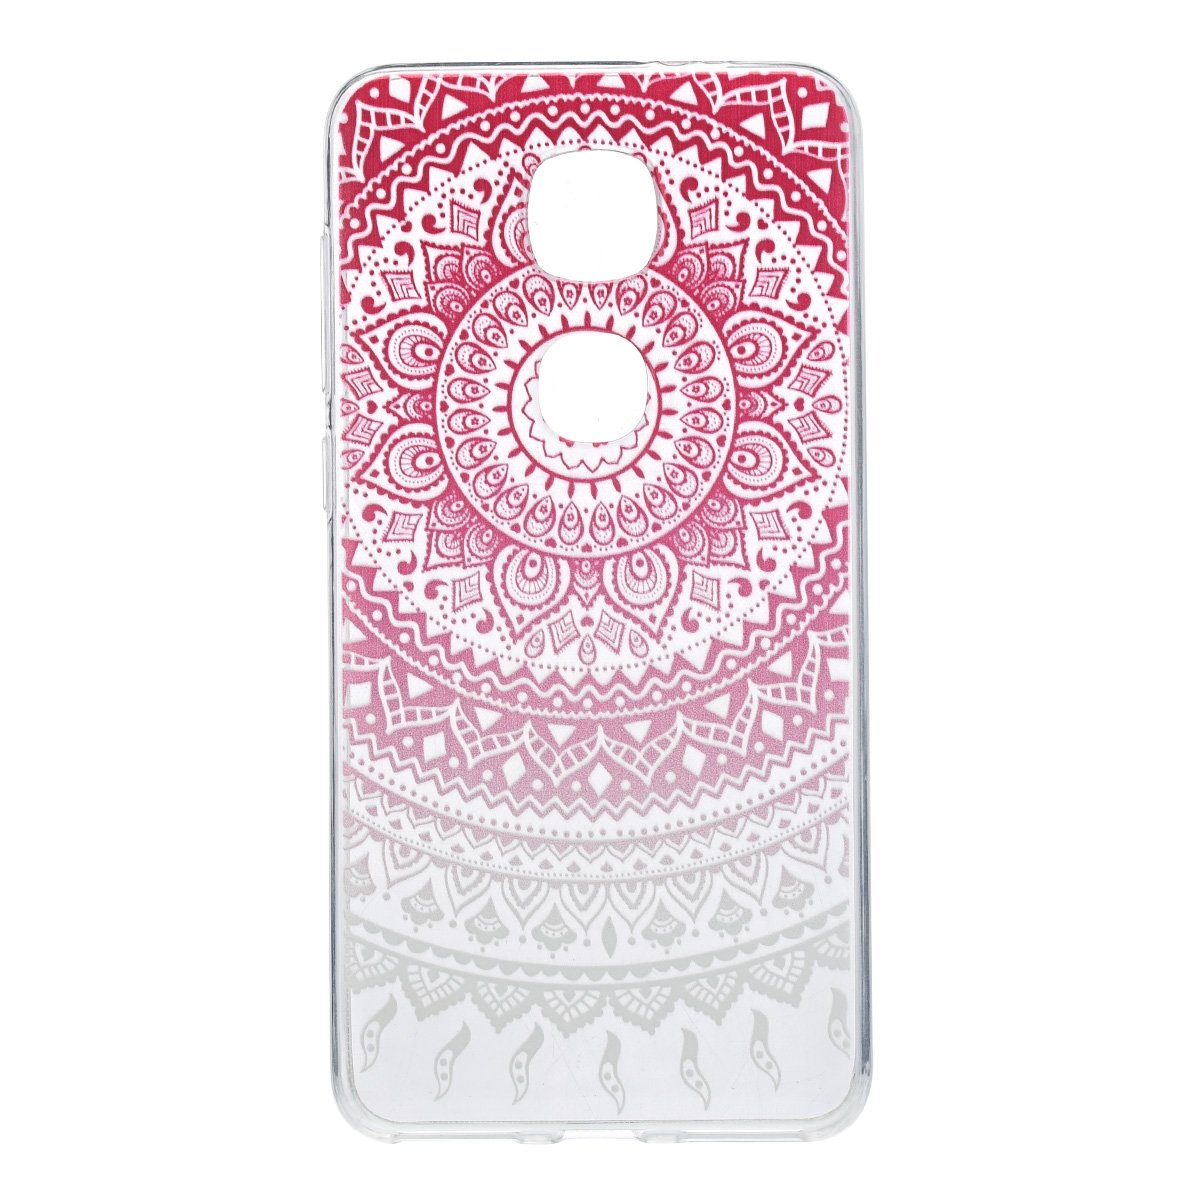 könig-shop Funda de móvil schutz-cover Carcasa Estuche - India Sol Rosa Blanco Transparente, Apple i...